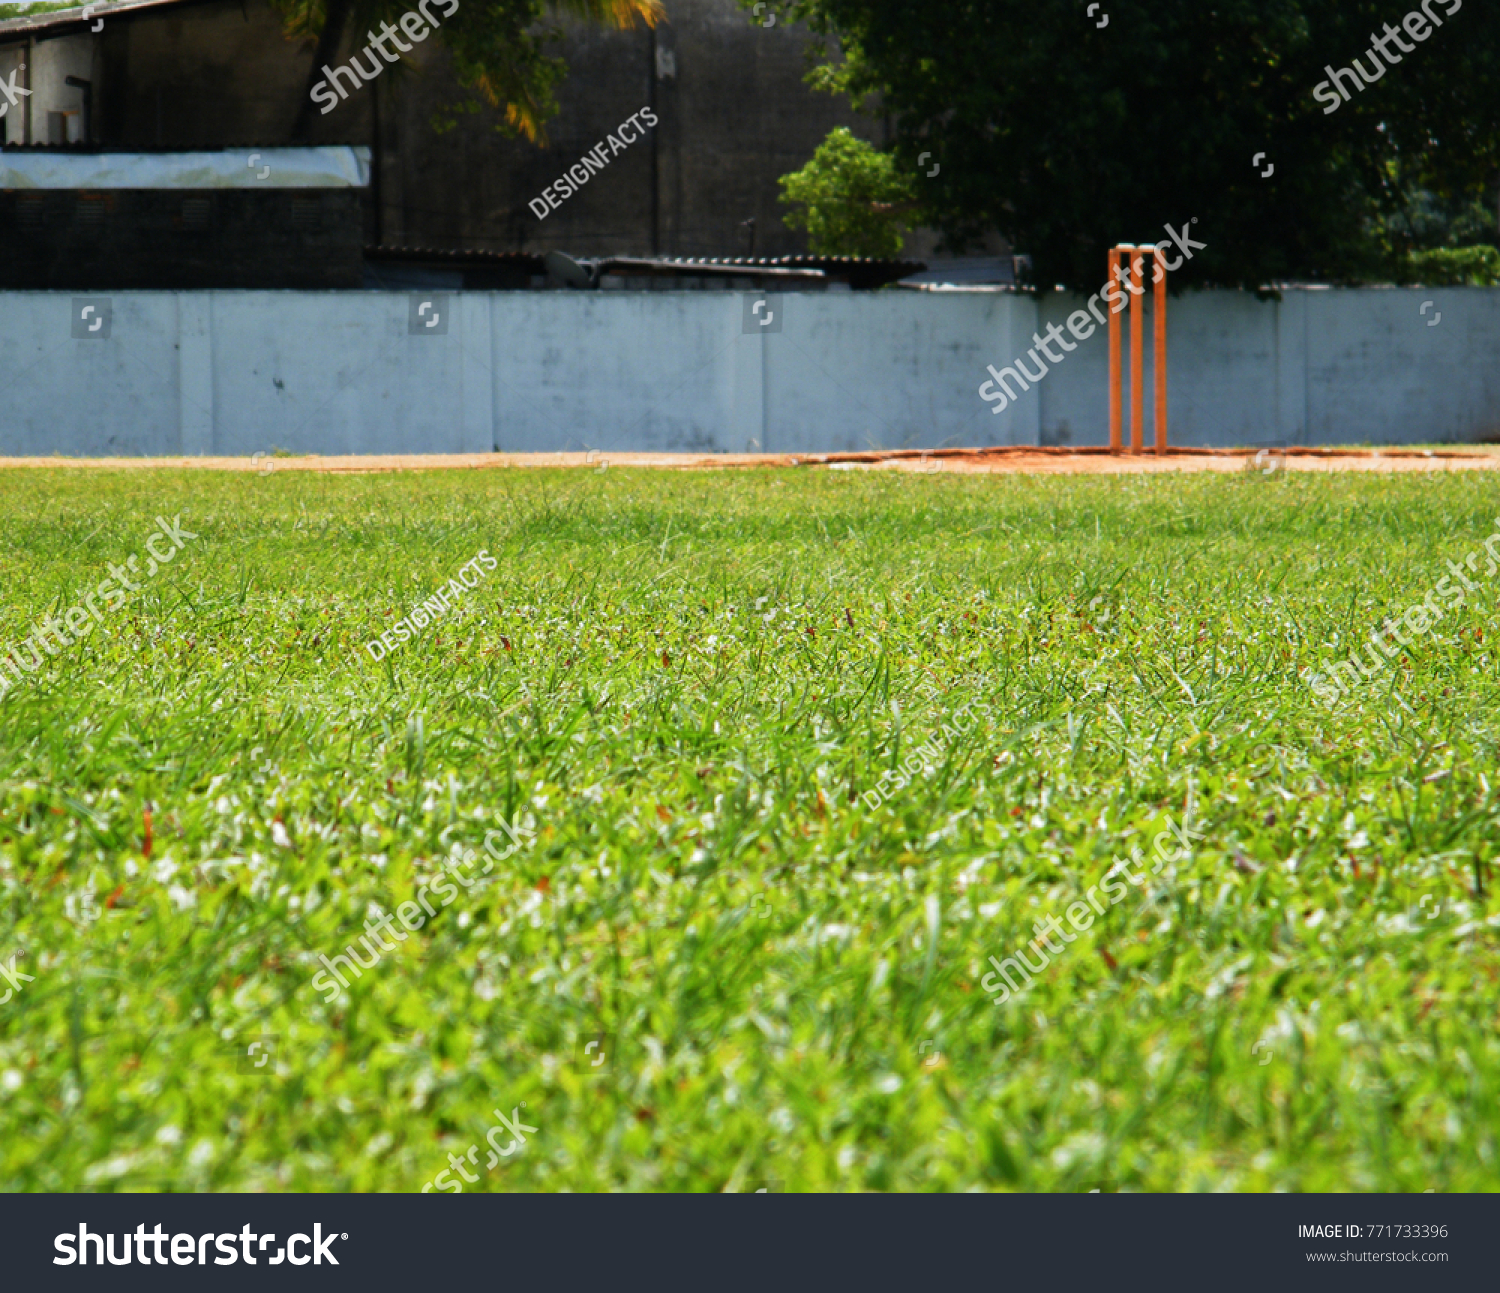 Turf Cricket Pitch Wicket Stumps Stock Photo (Edit Now